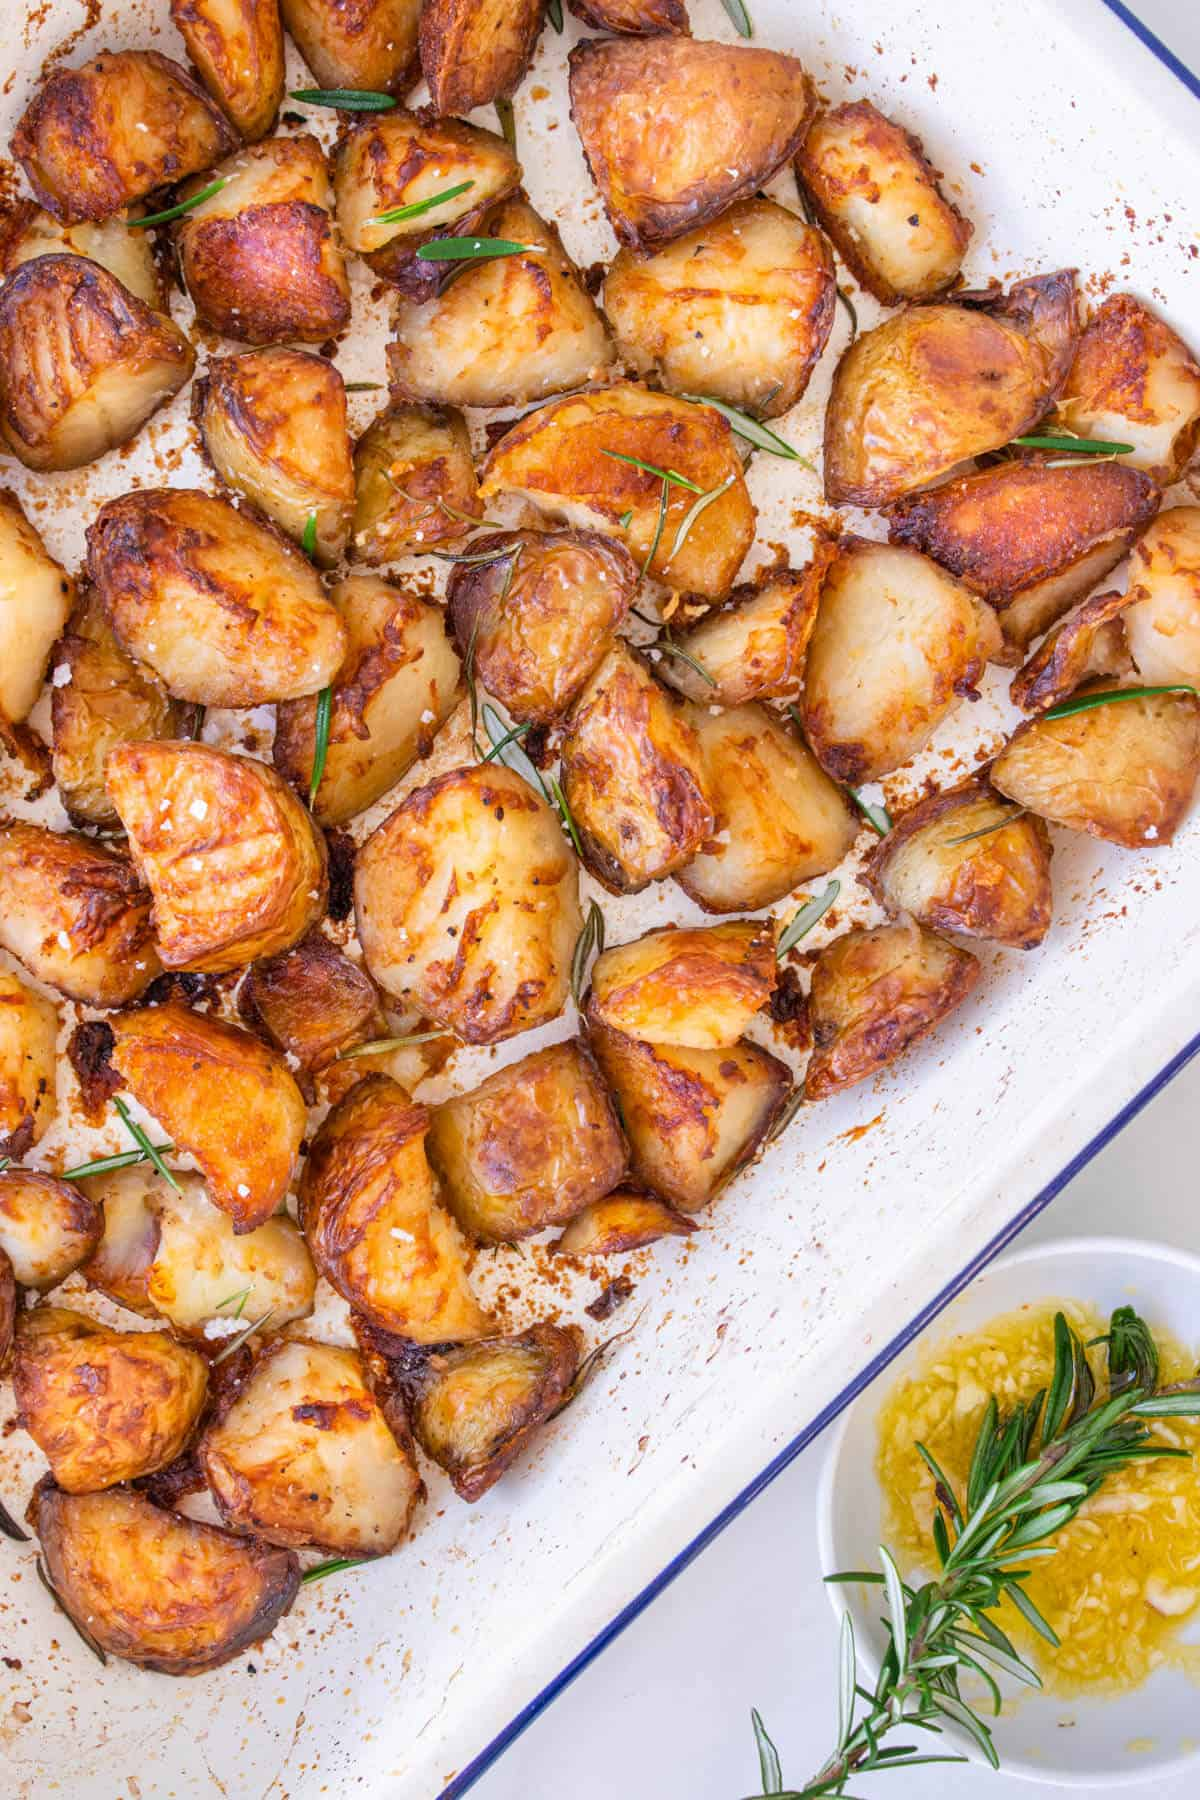 Crispy oven potatoes in an oven tray